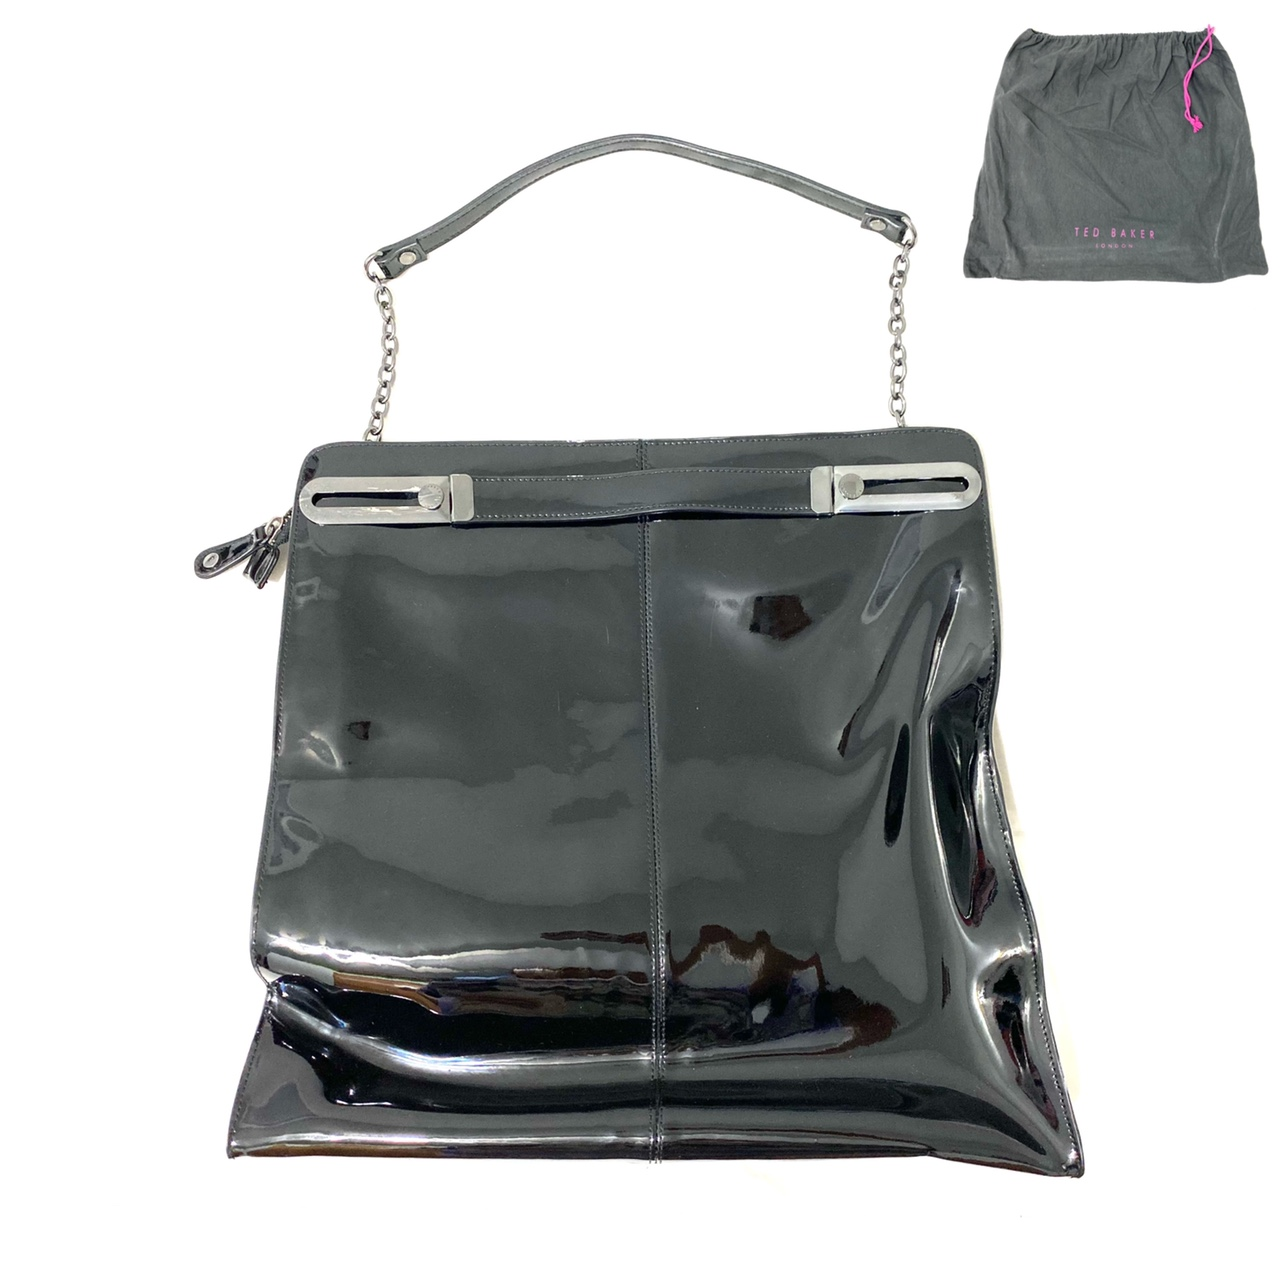 Product Image 1 - 90s/Y2K Glossy Black Tote by